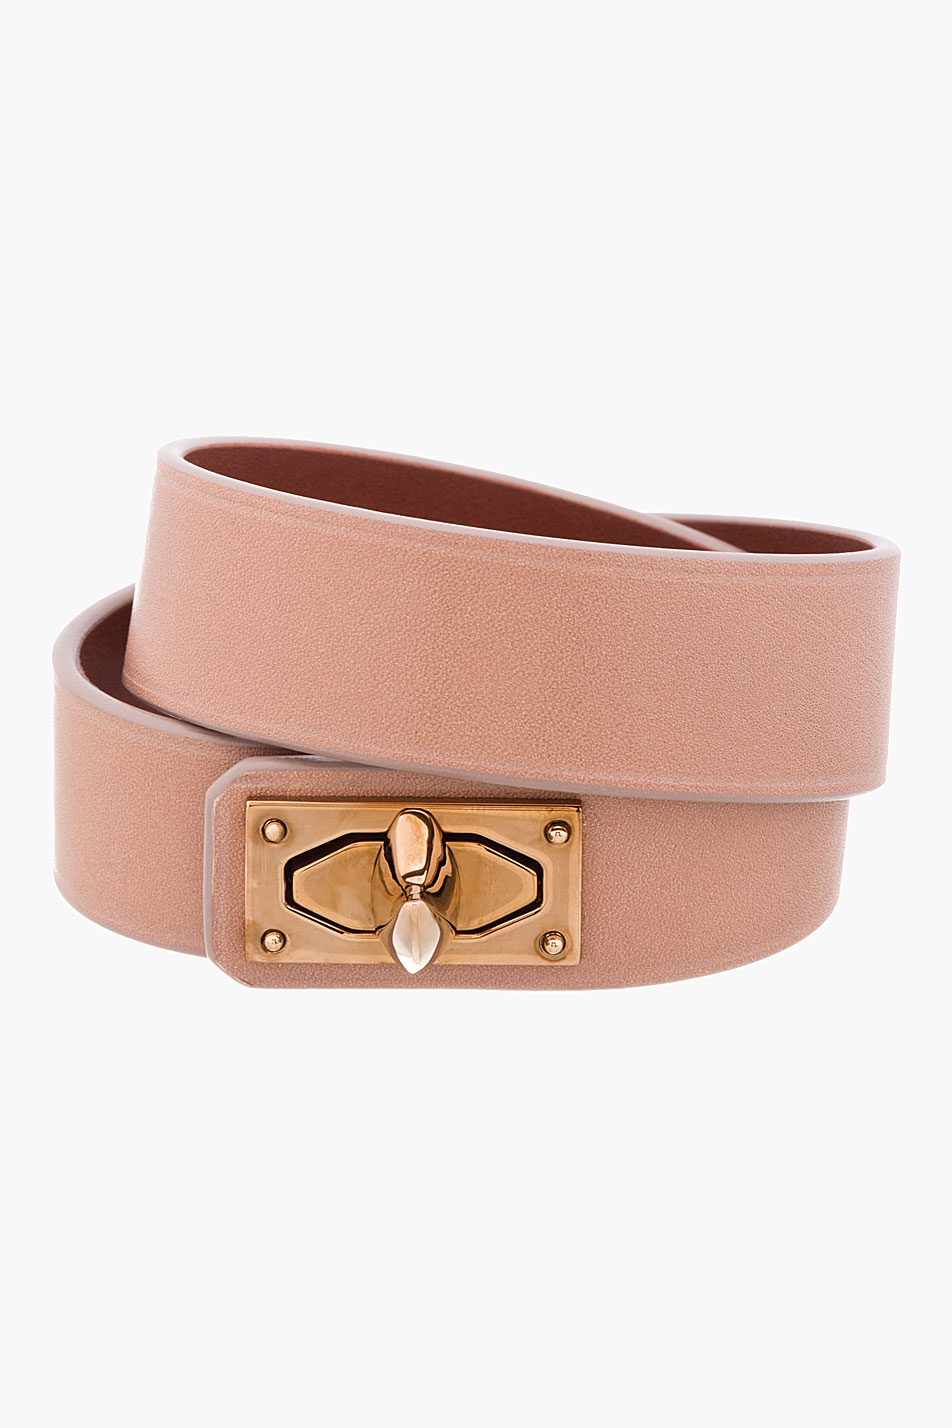 Givenchy Clay Pink Leather Shark Lock Bracelet